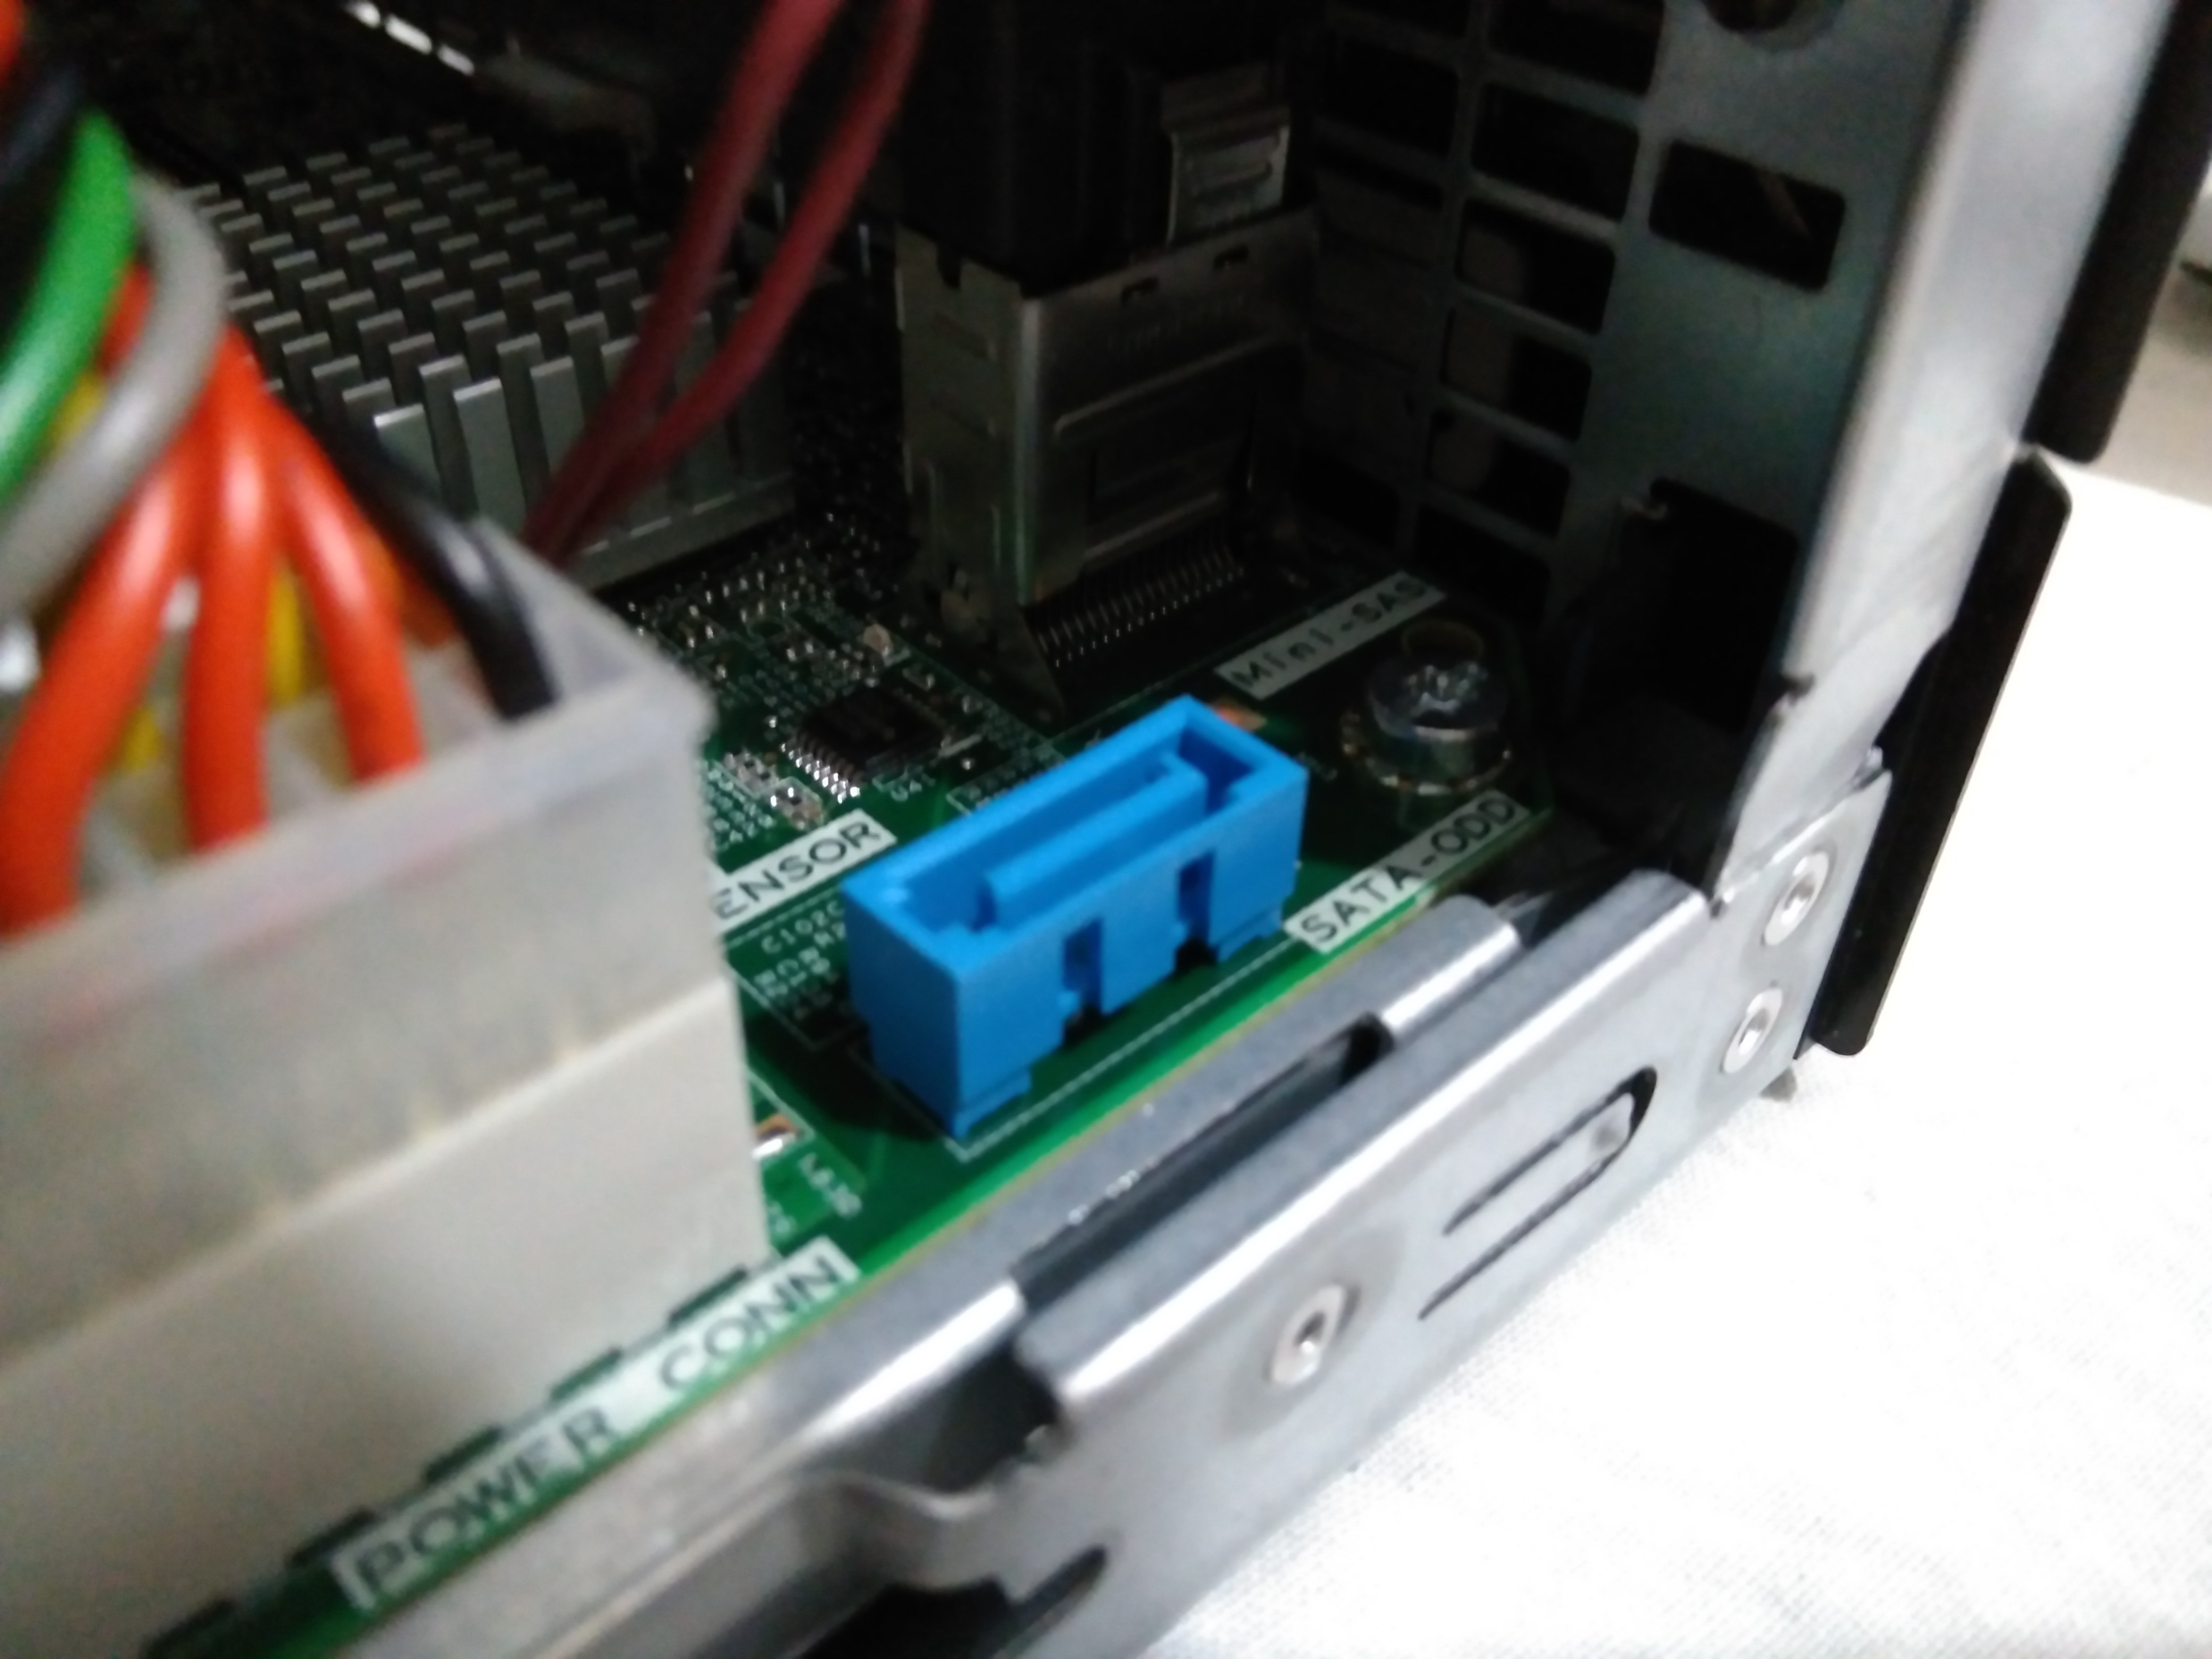 Home Server 4 Install Ssd To Hp Microserver Gen8 Data Wiring Sata Port